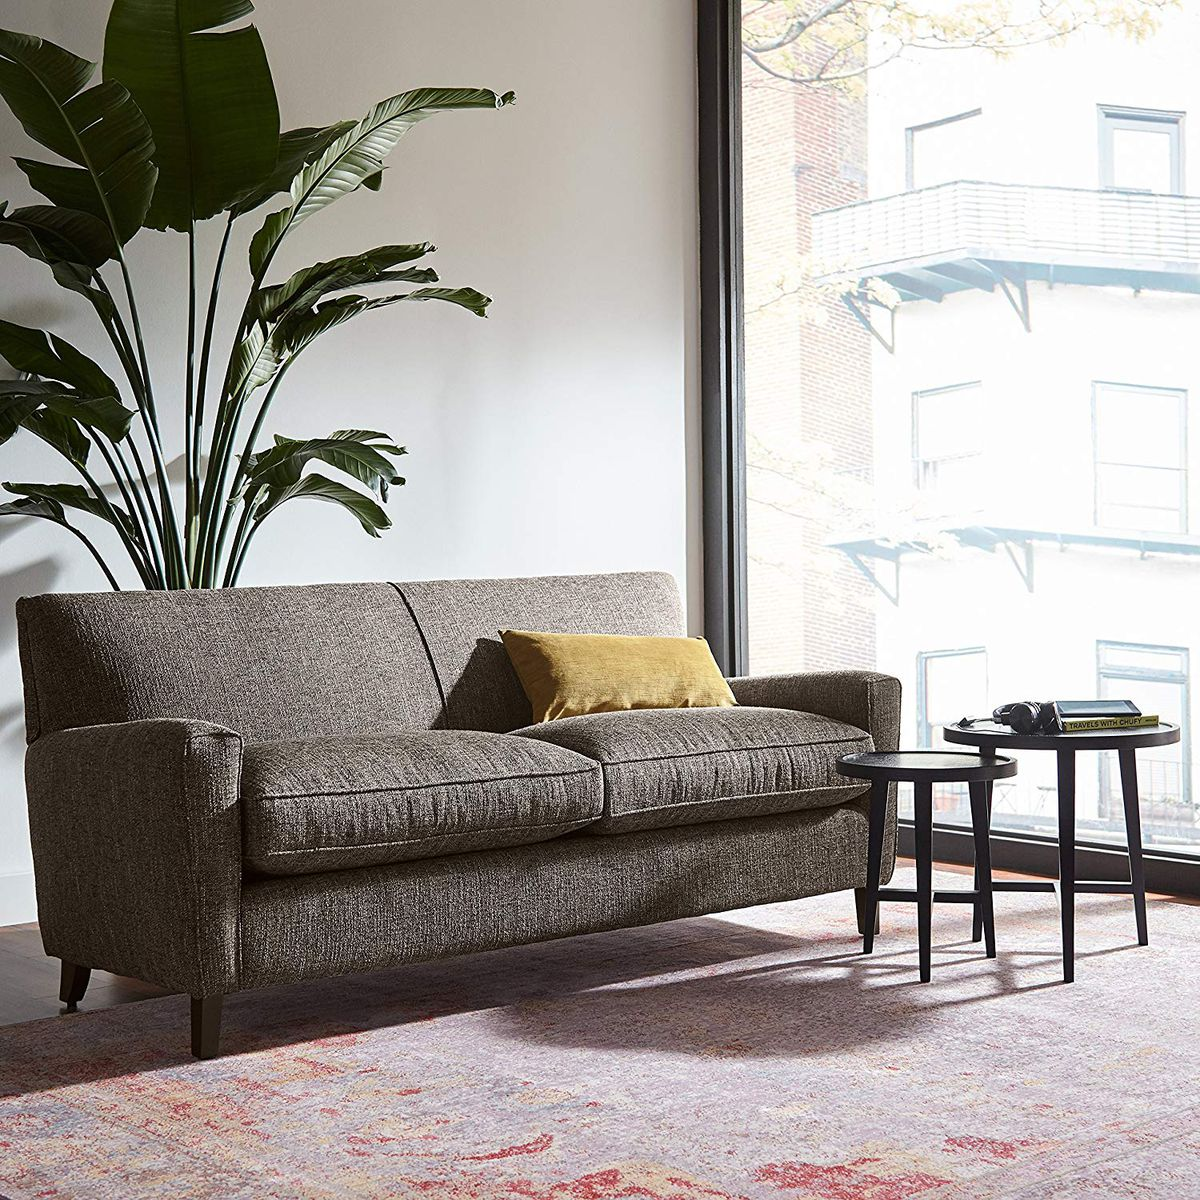 Amazon Sofa Sale Amazon S Furniture Lines Rivet Stone And Beam Have A Ton Of